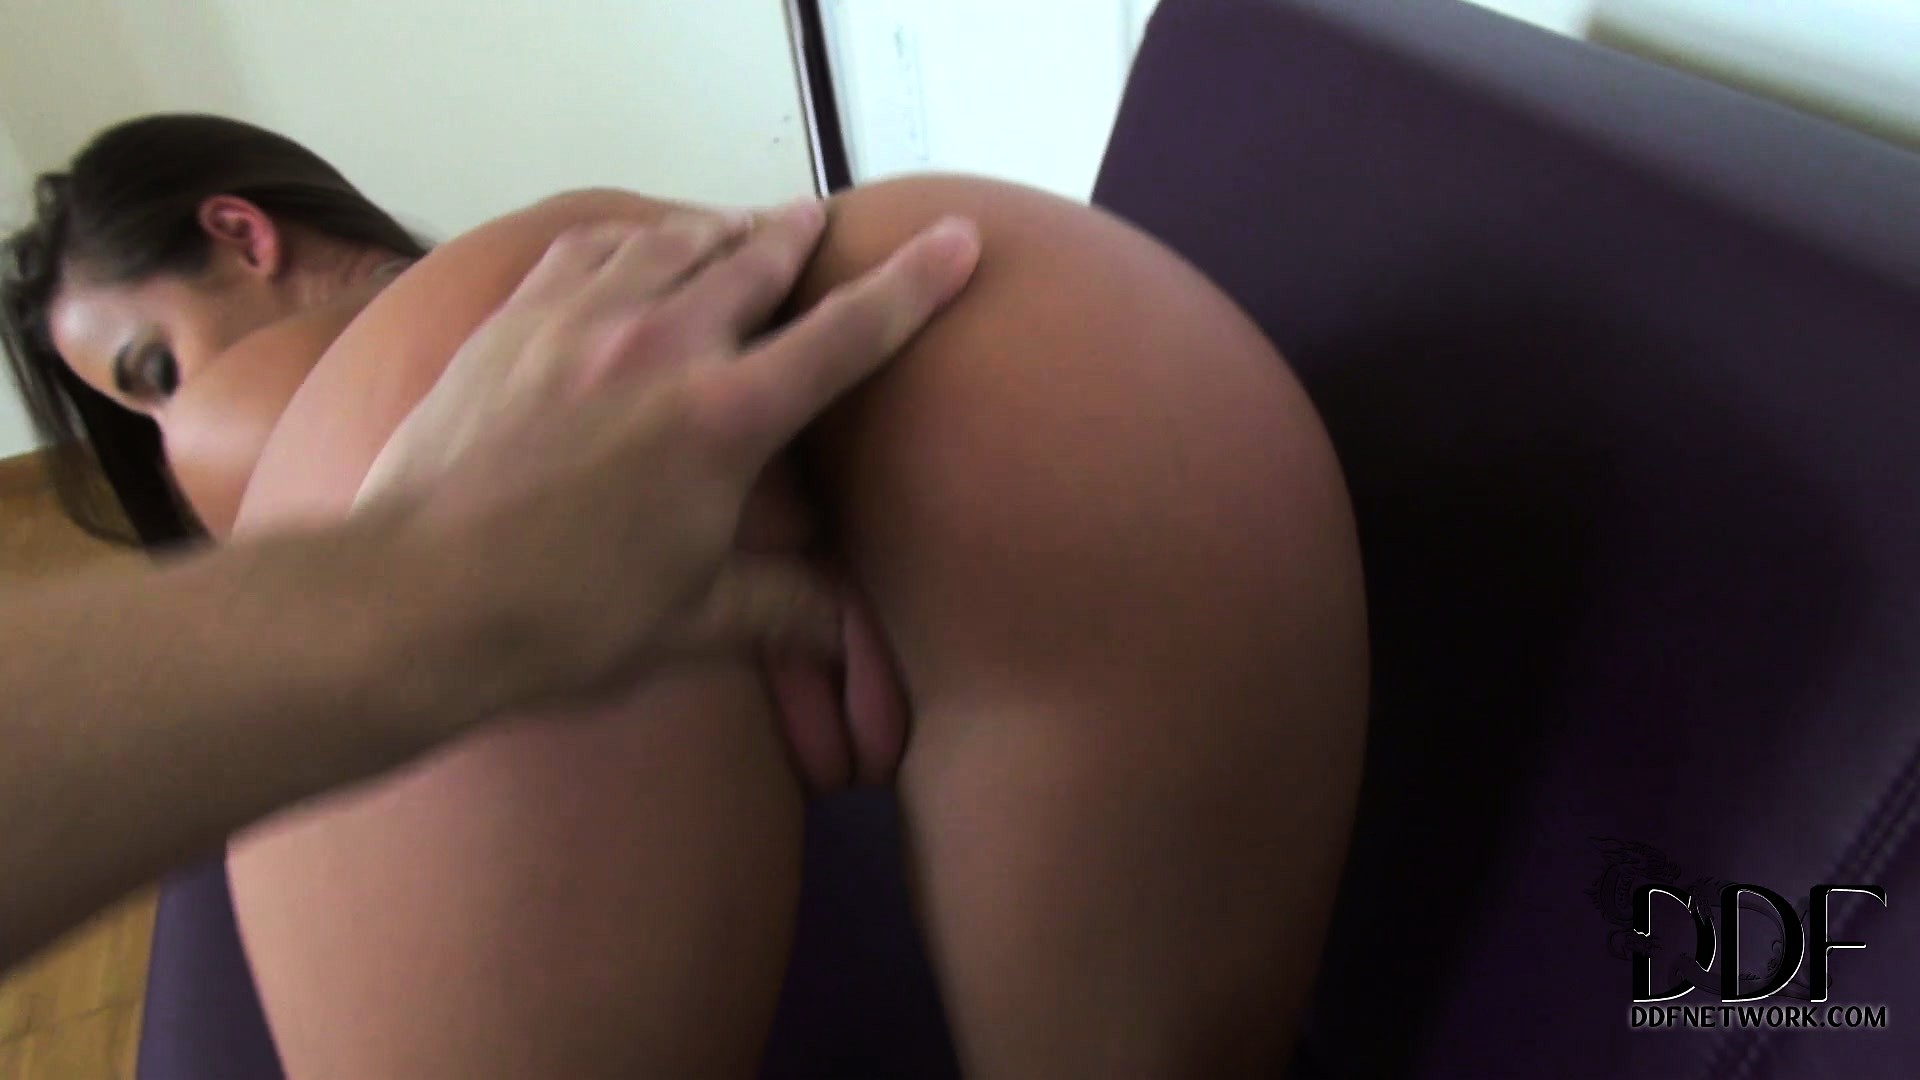 Porno Video of The Mover Is Moved By His Moving Pov Blowjob Then Helps Her Move